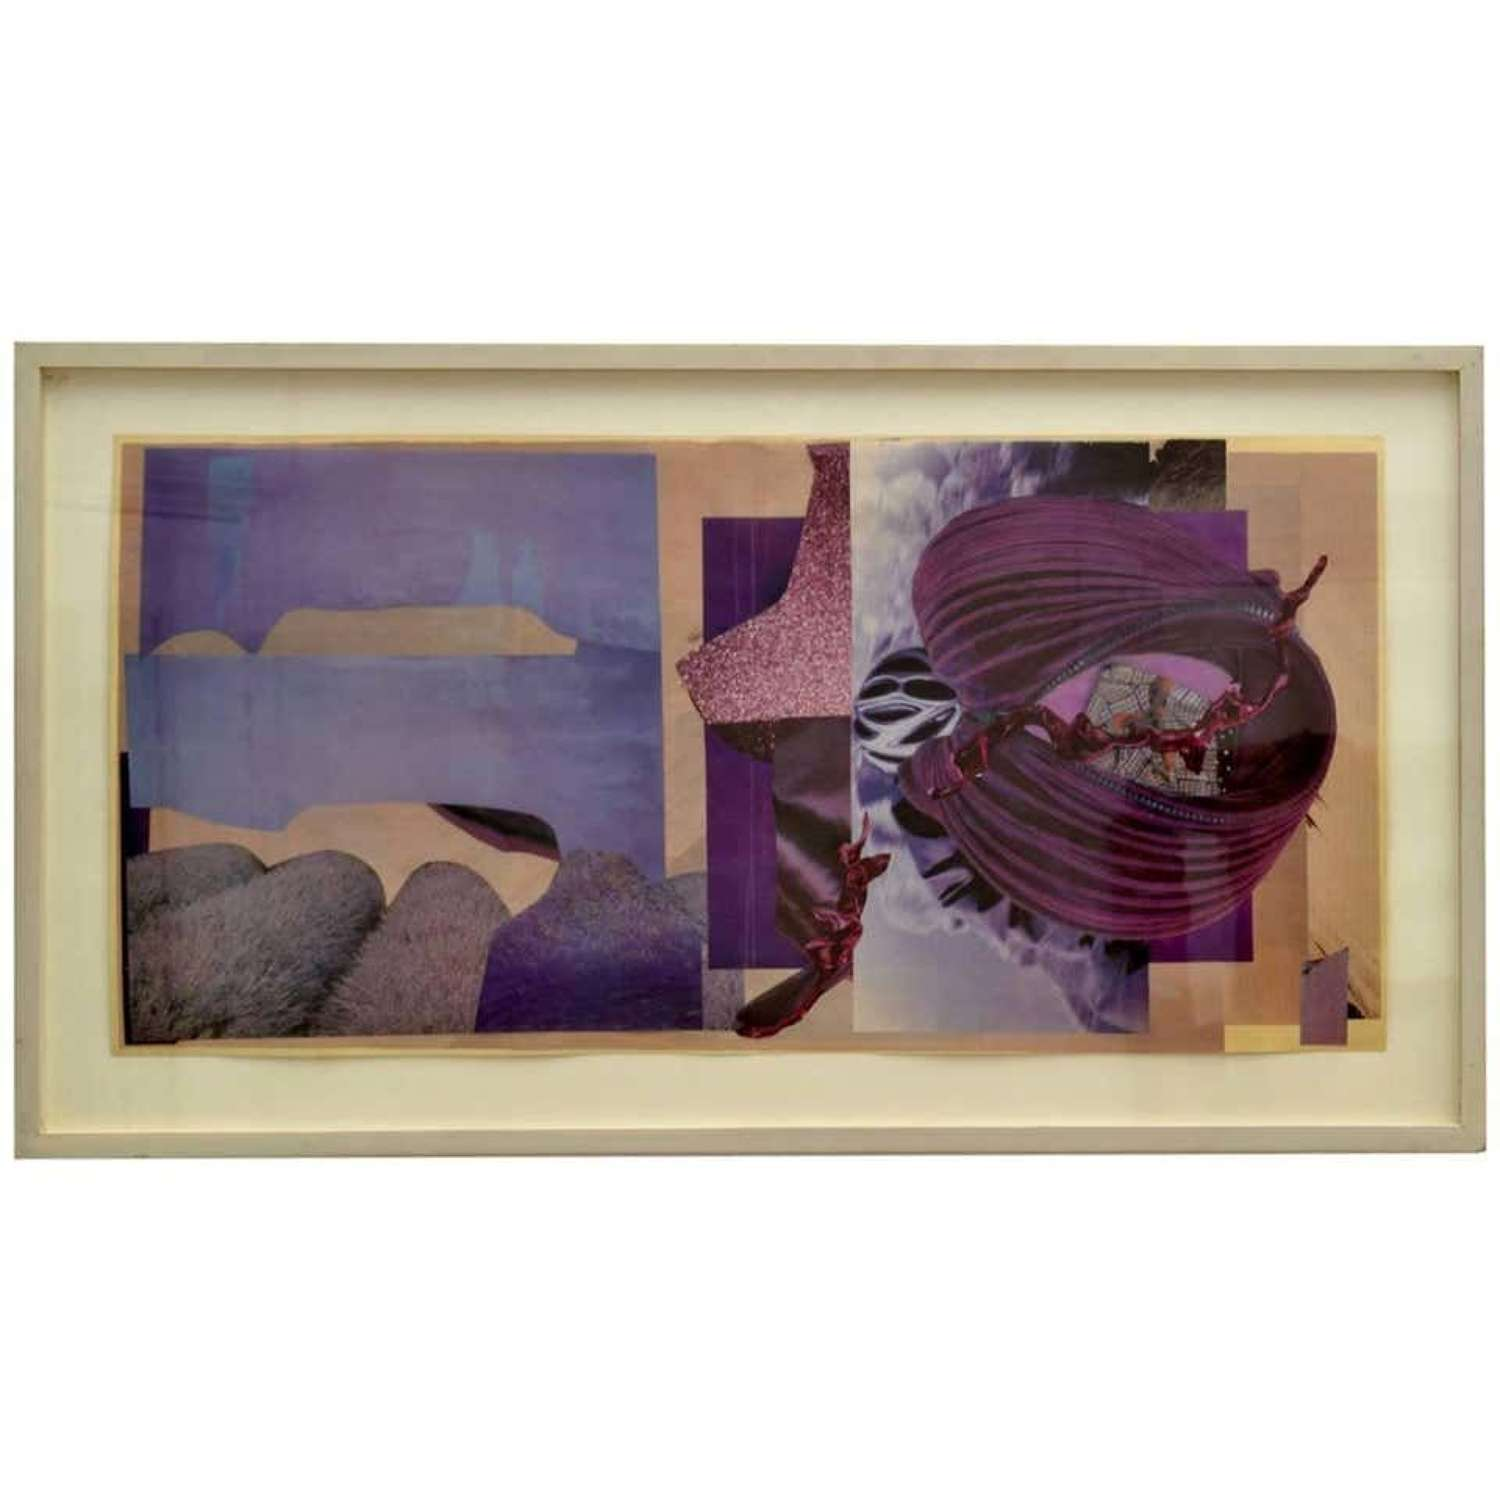 Abstract Collage Art in Purple by B Allan, UK, 1993